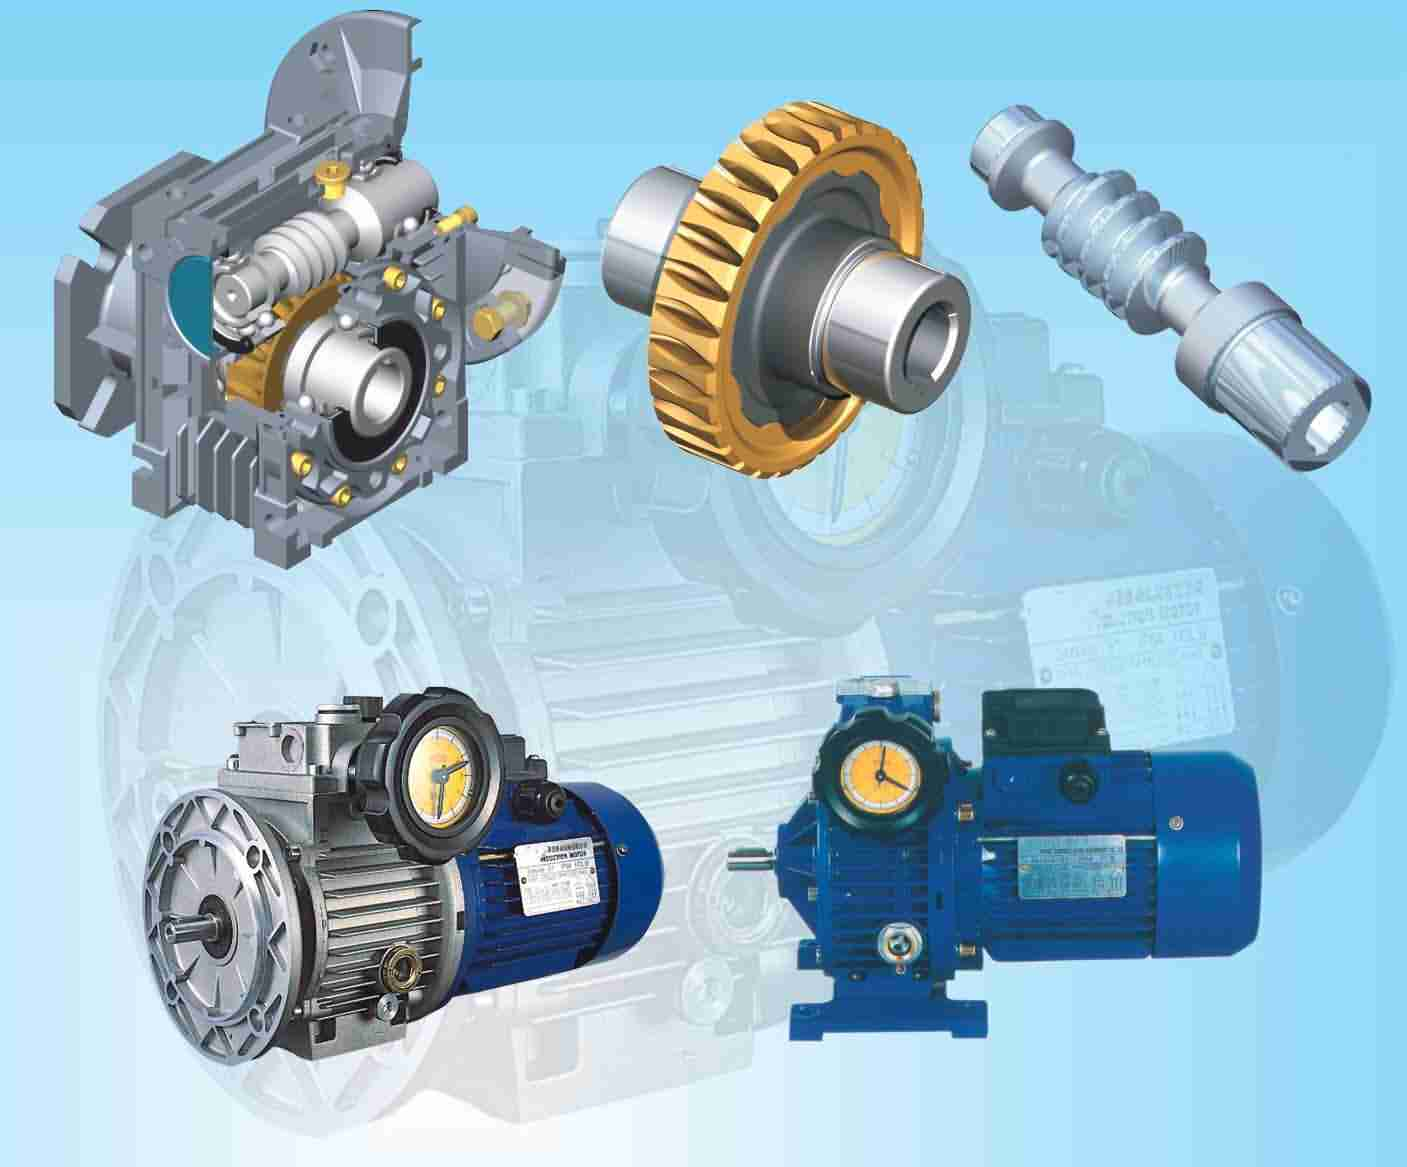 worm reduer|speed reducers | gearboxes| helical gear|